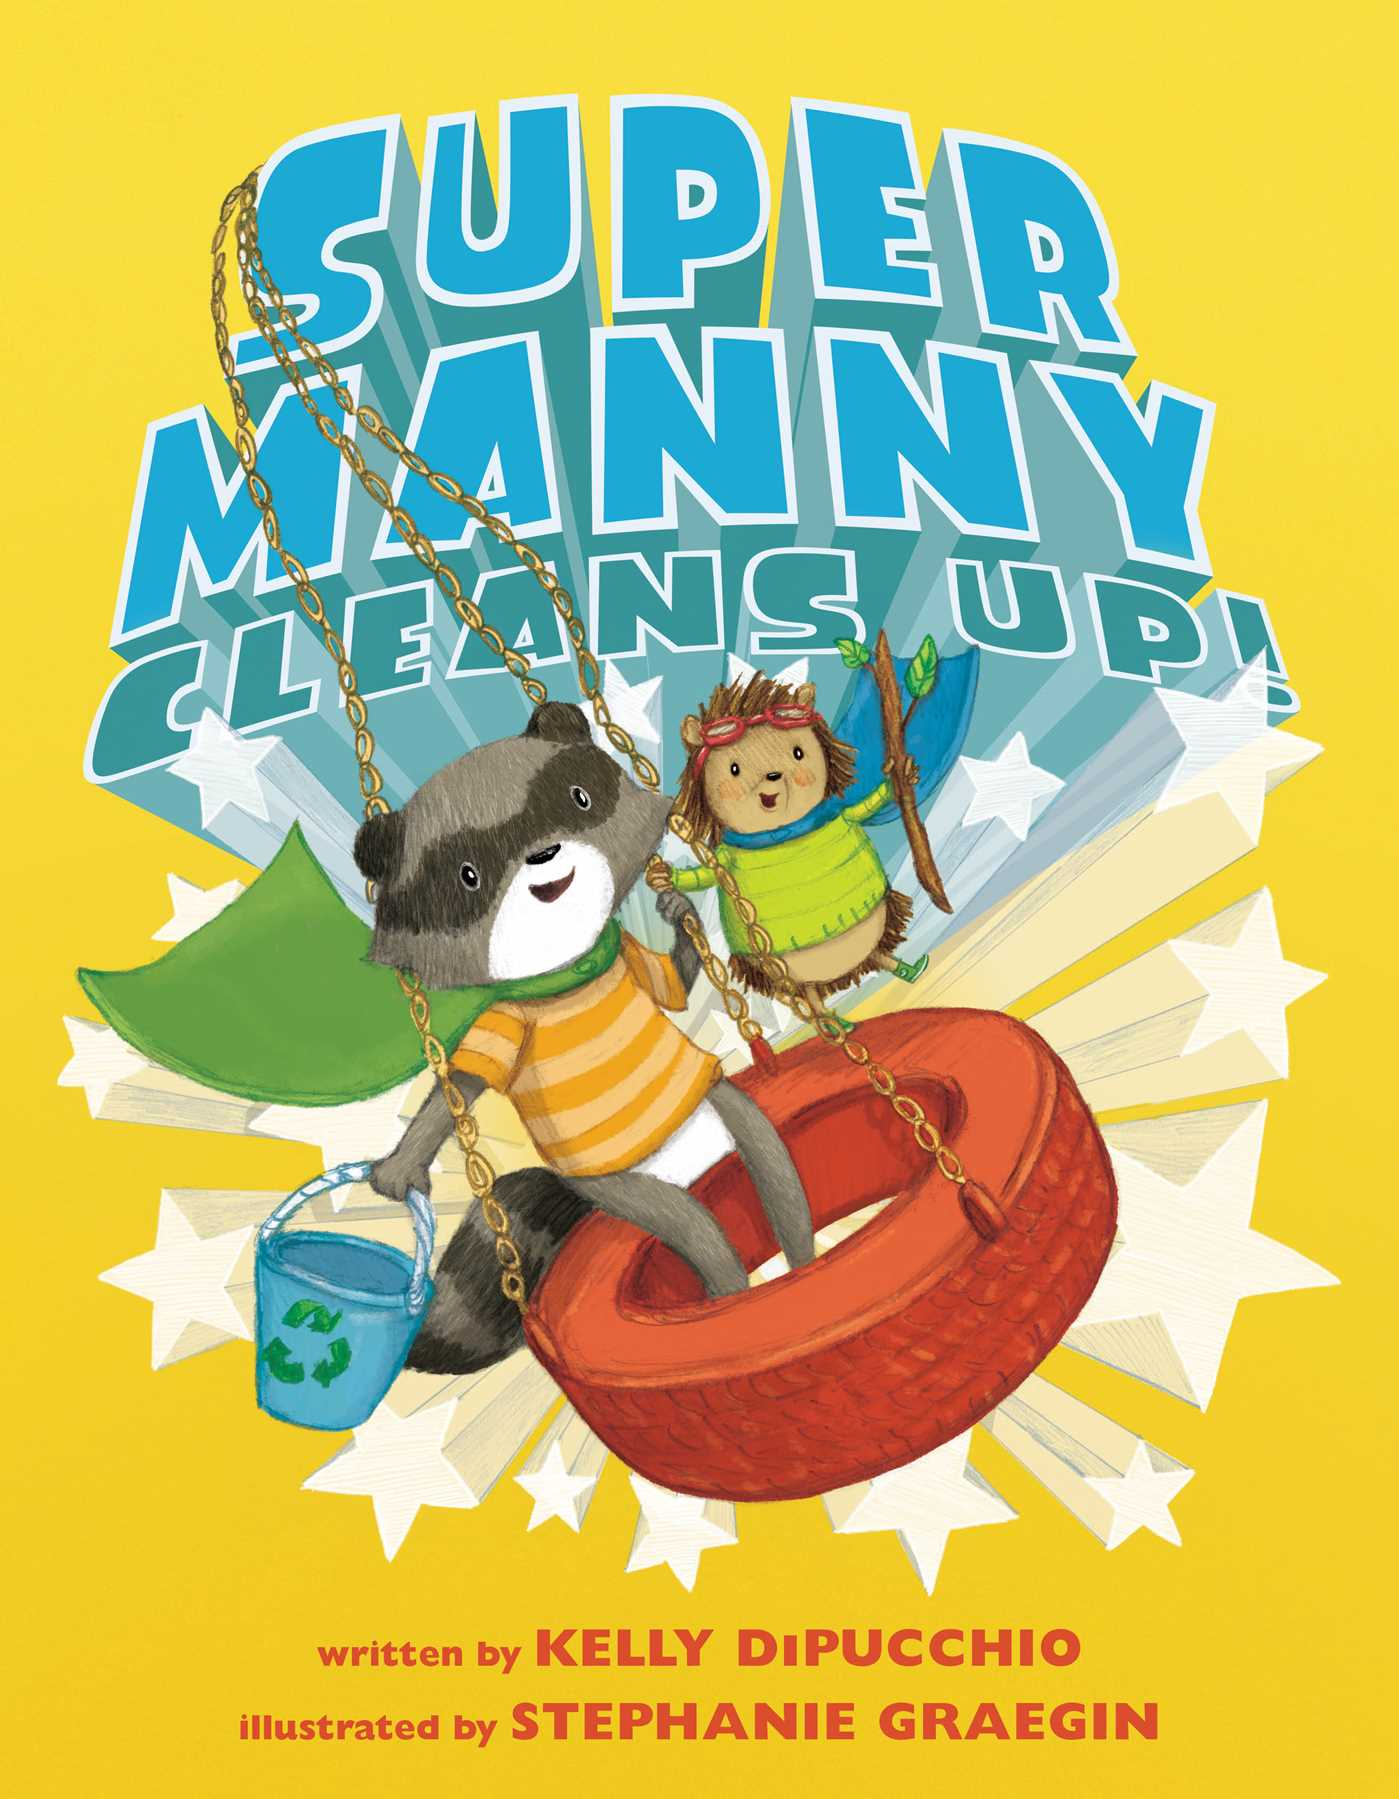 super-manny-cleans-up-9781481459624_hr.jpg